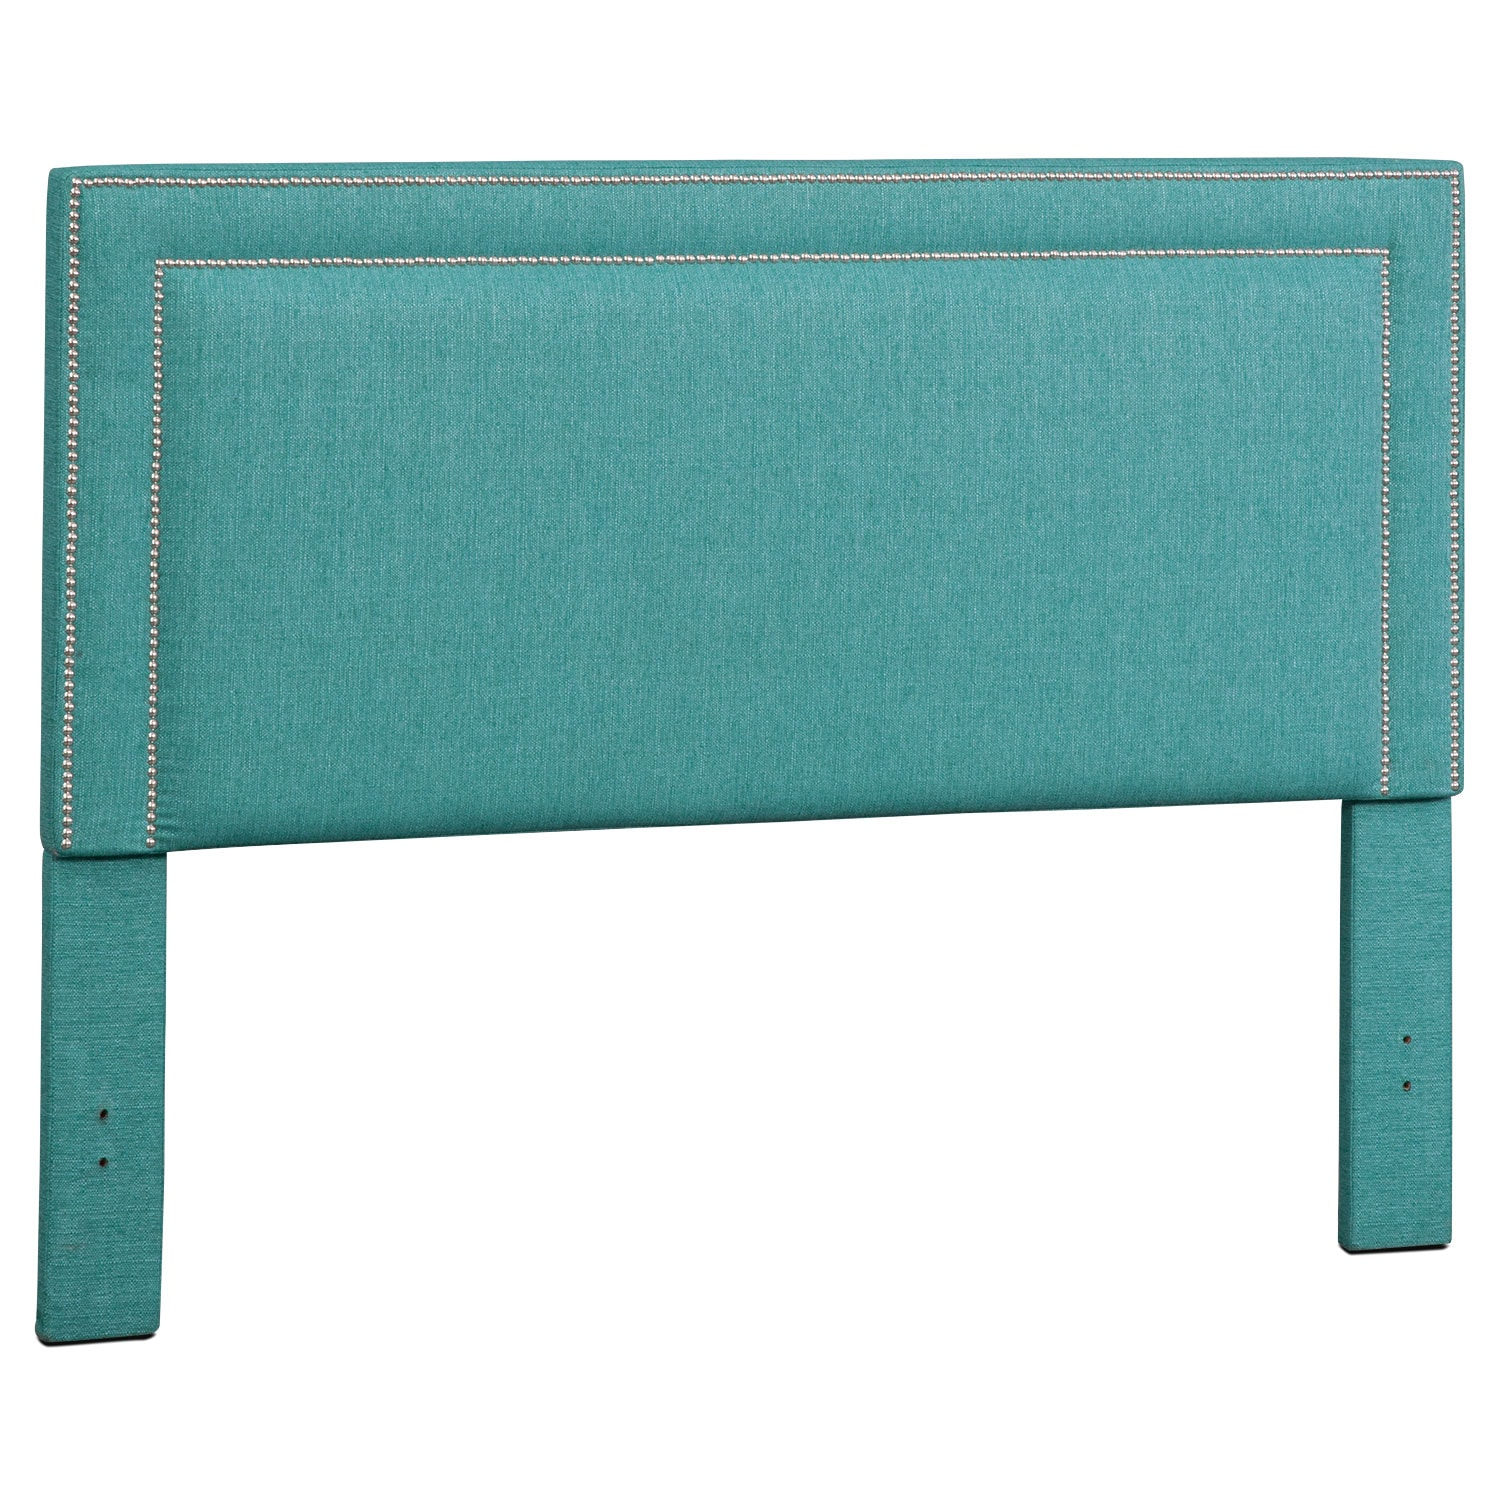 Natalie Queen Upholstered Headboard - Teal